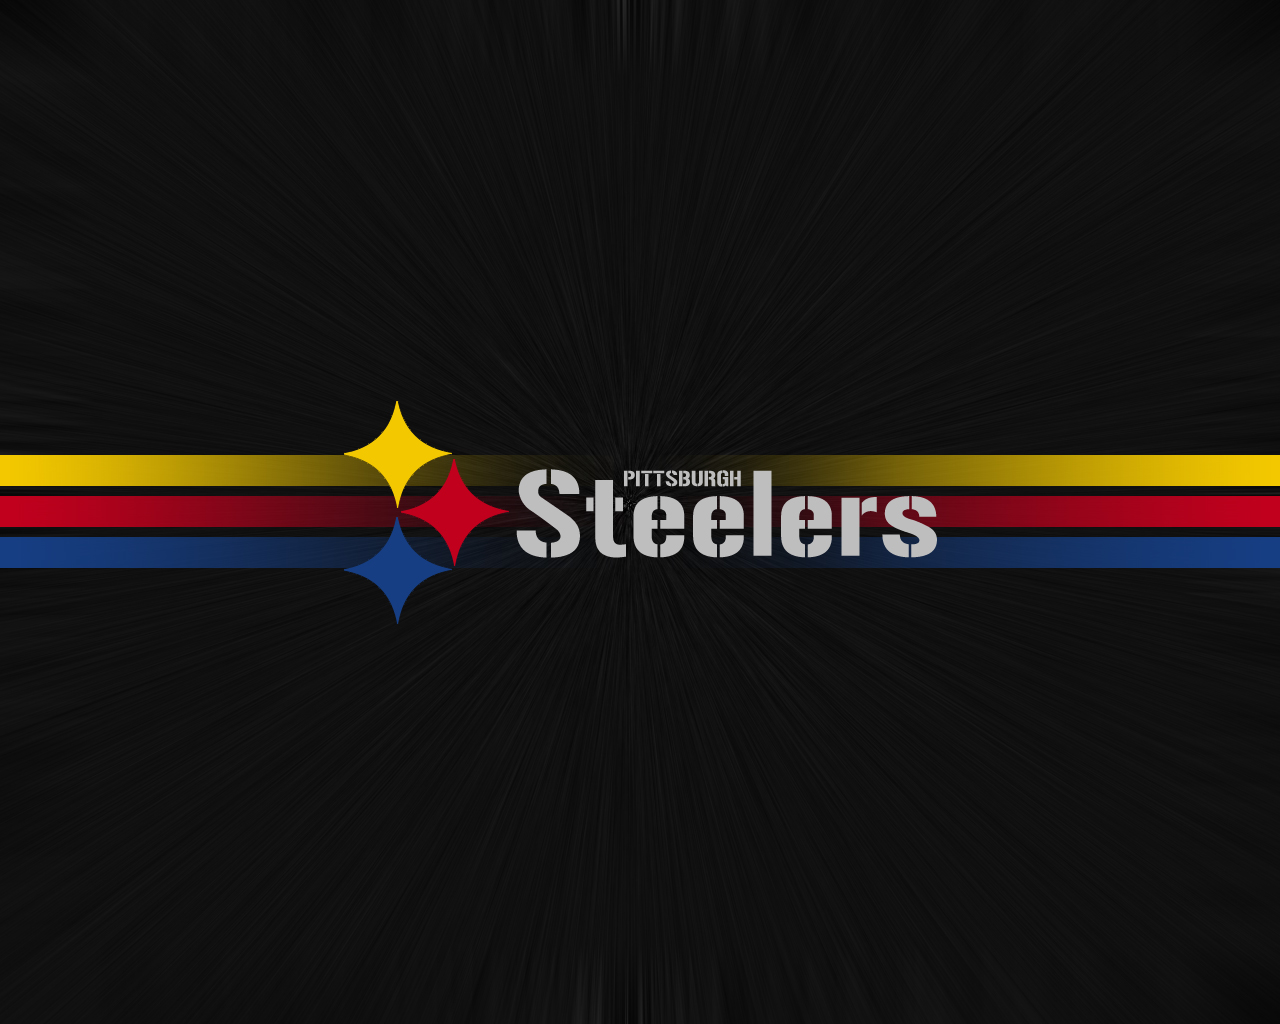 steelers - photo #12